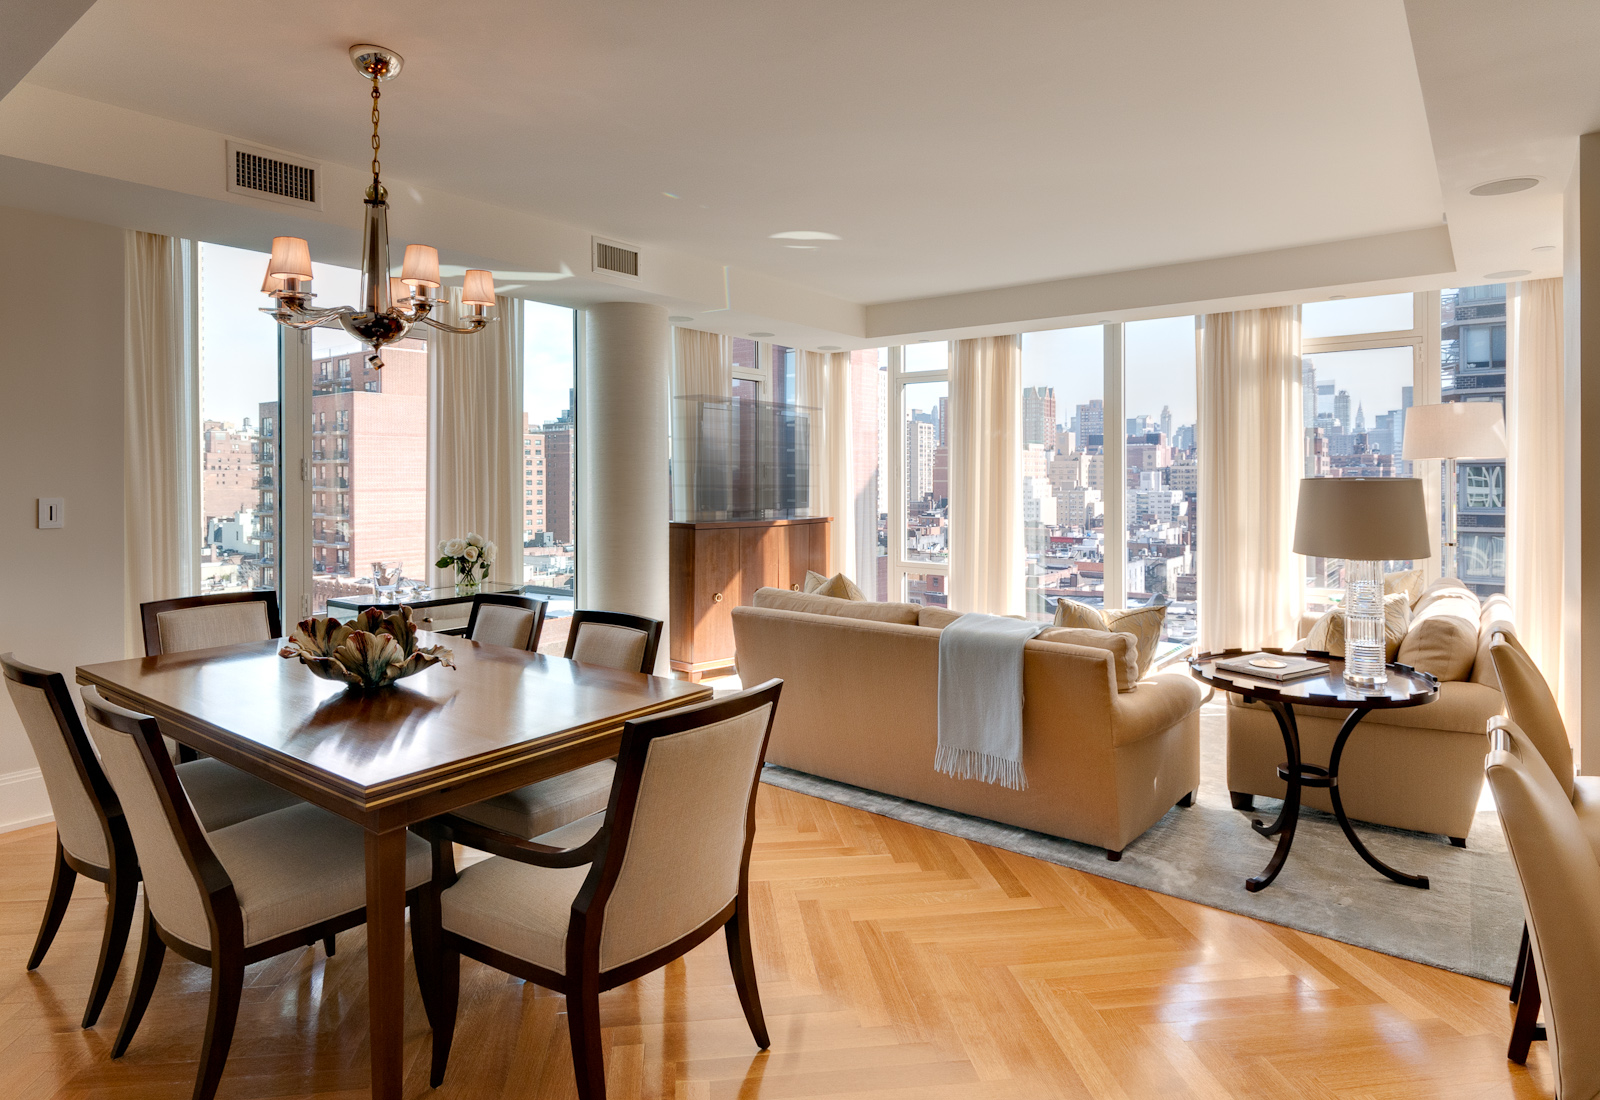 decorating living room dining room combo photo - 1